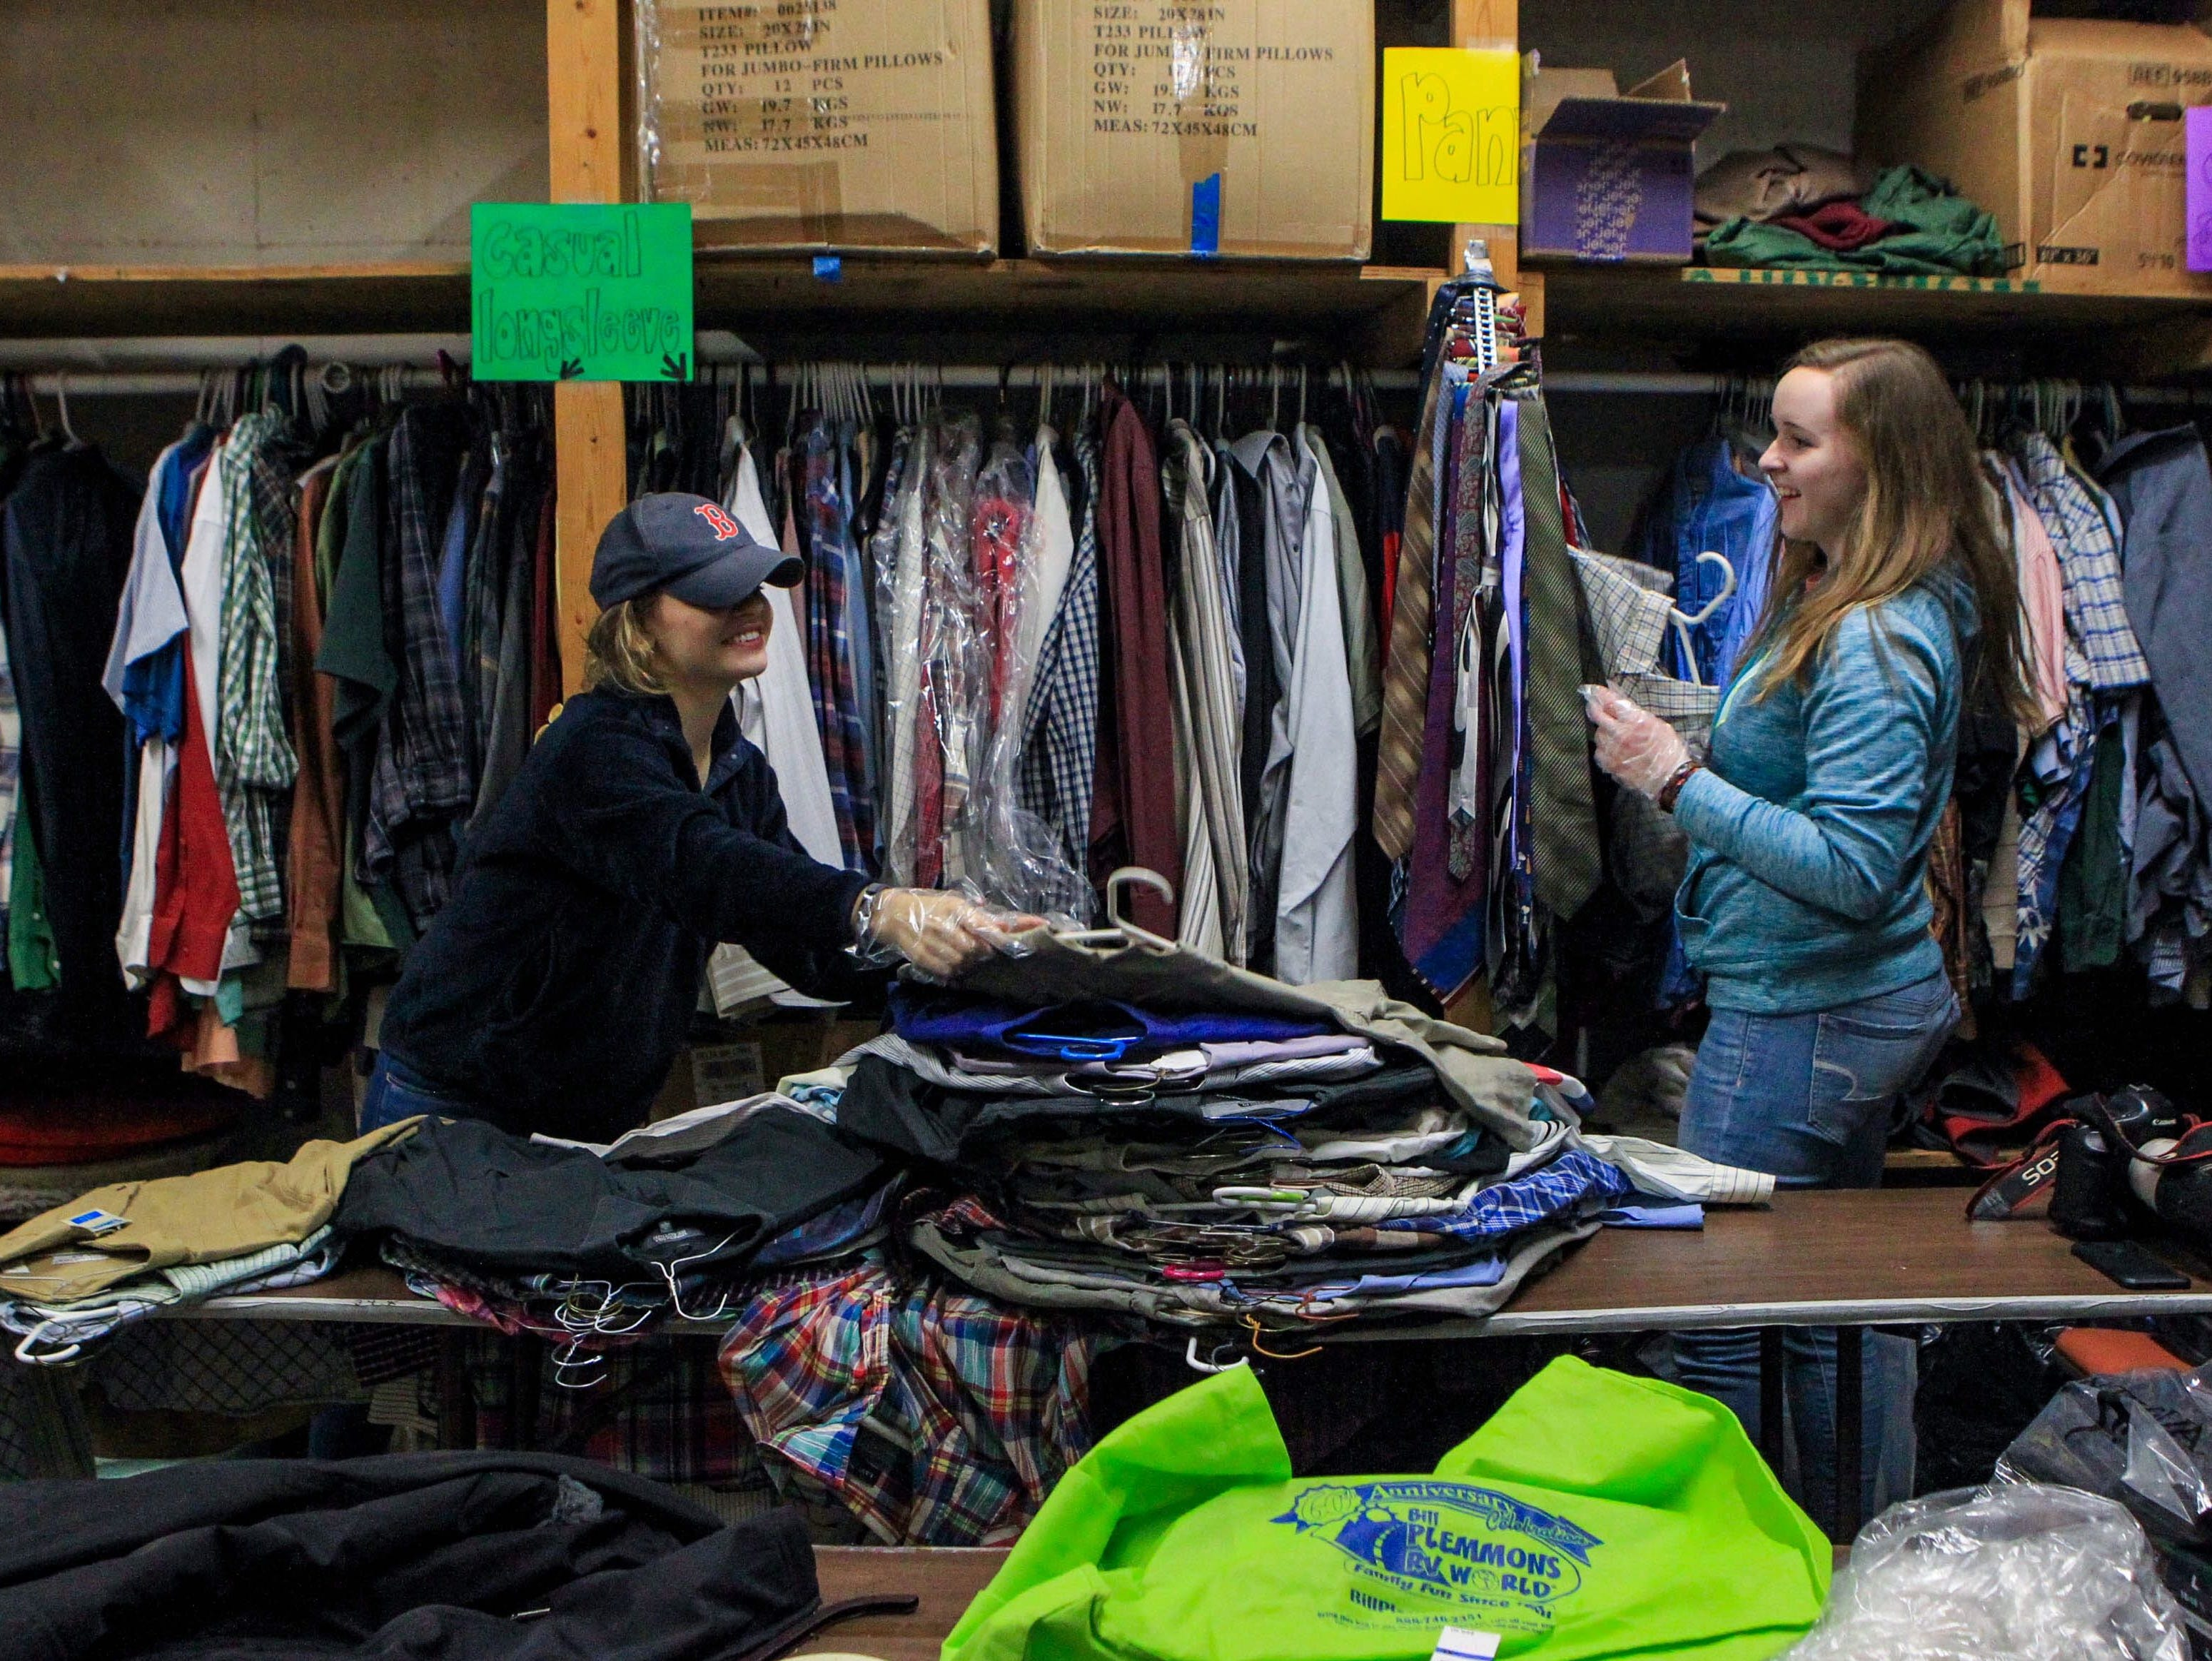 Sarah Rumpf, a sophomore, and Sarah Knutson, a sophomore, talk as they sort through shirt sizes at Miracle HillÕs Greenville Rescue Mission on Martin Luther King, Jr. Day Monday, Jan. 21, 2019.